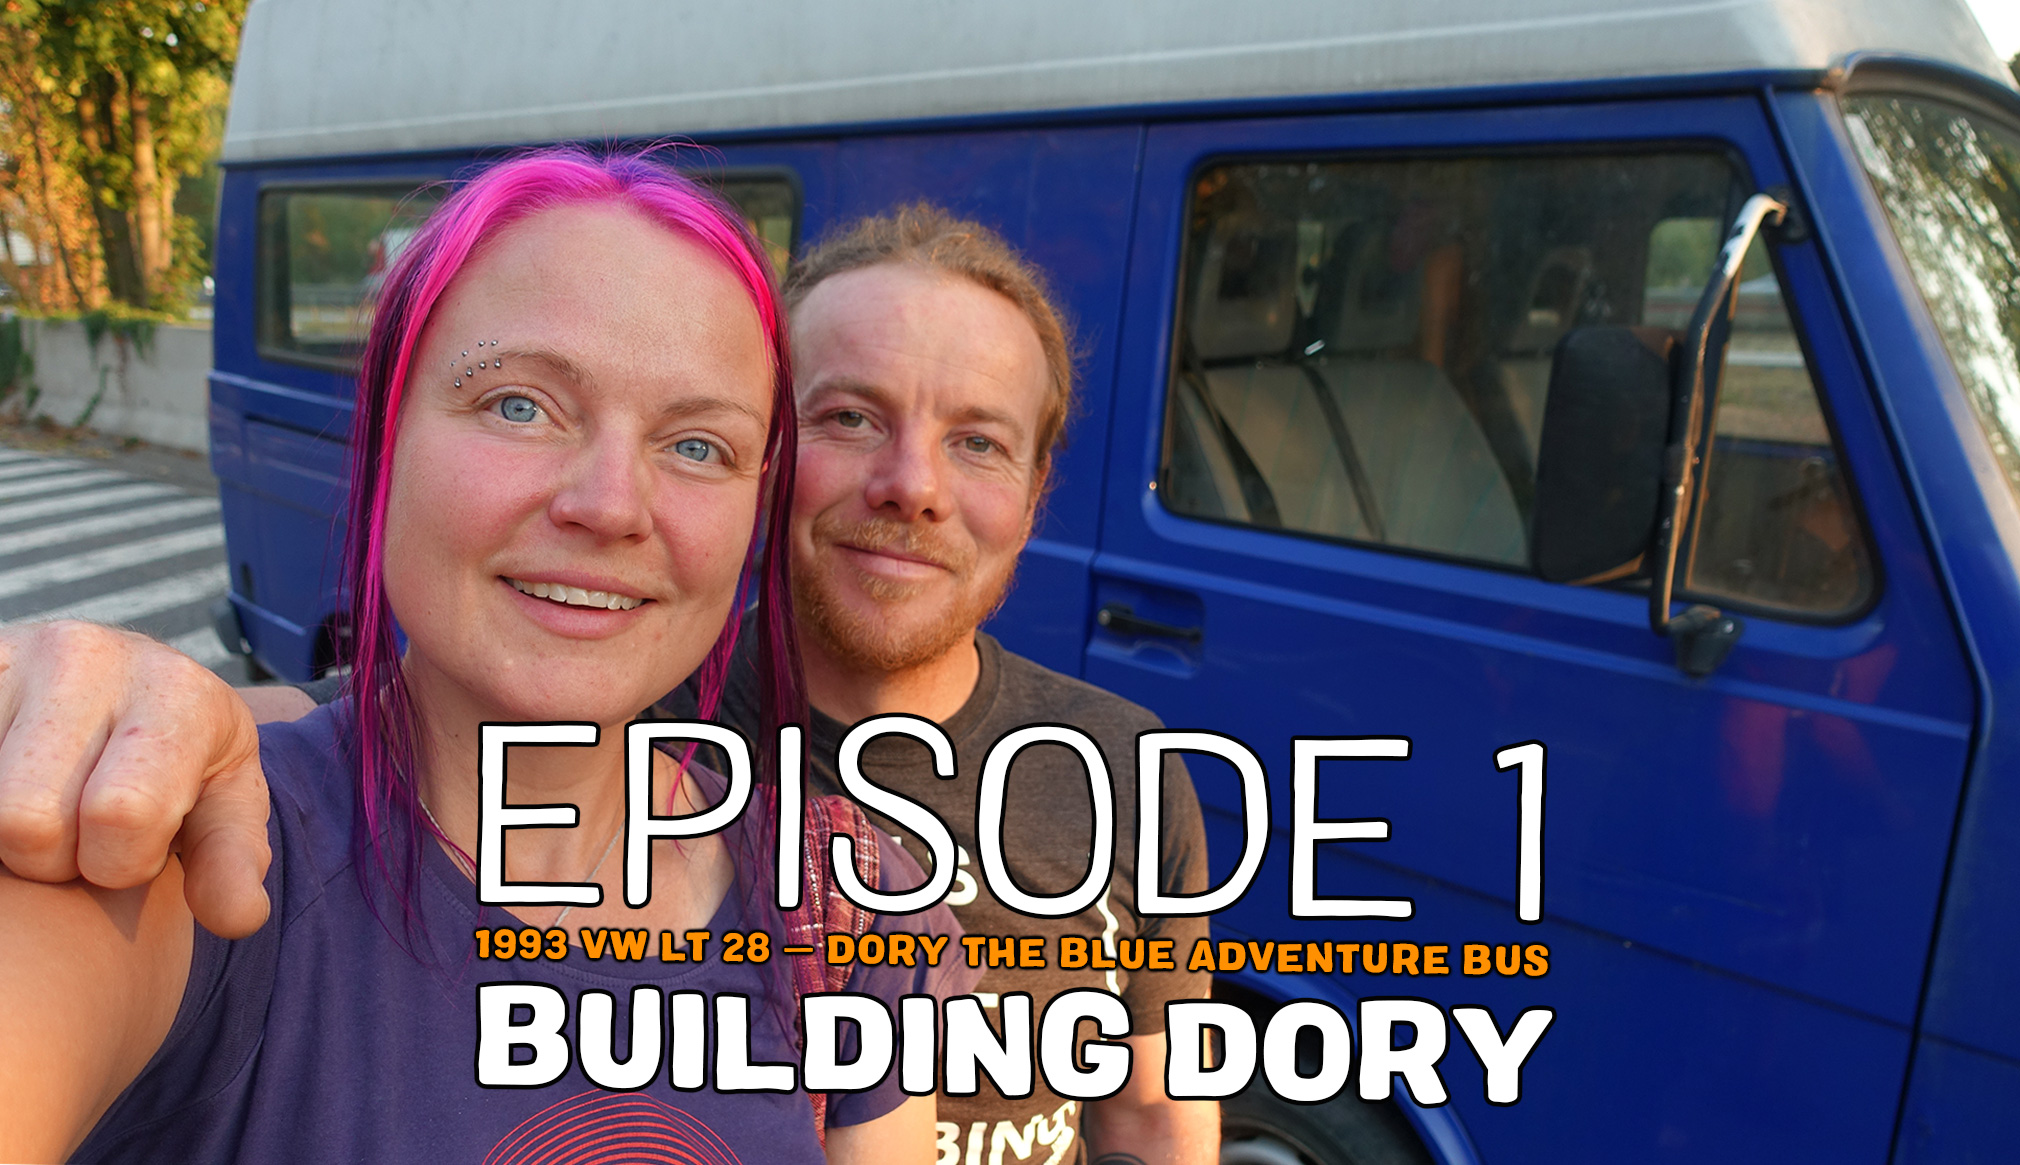 Building Dory episode 1